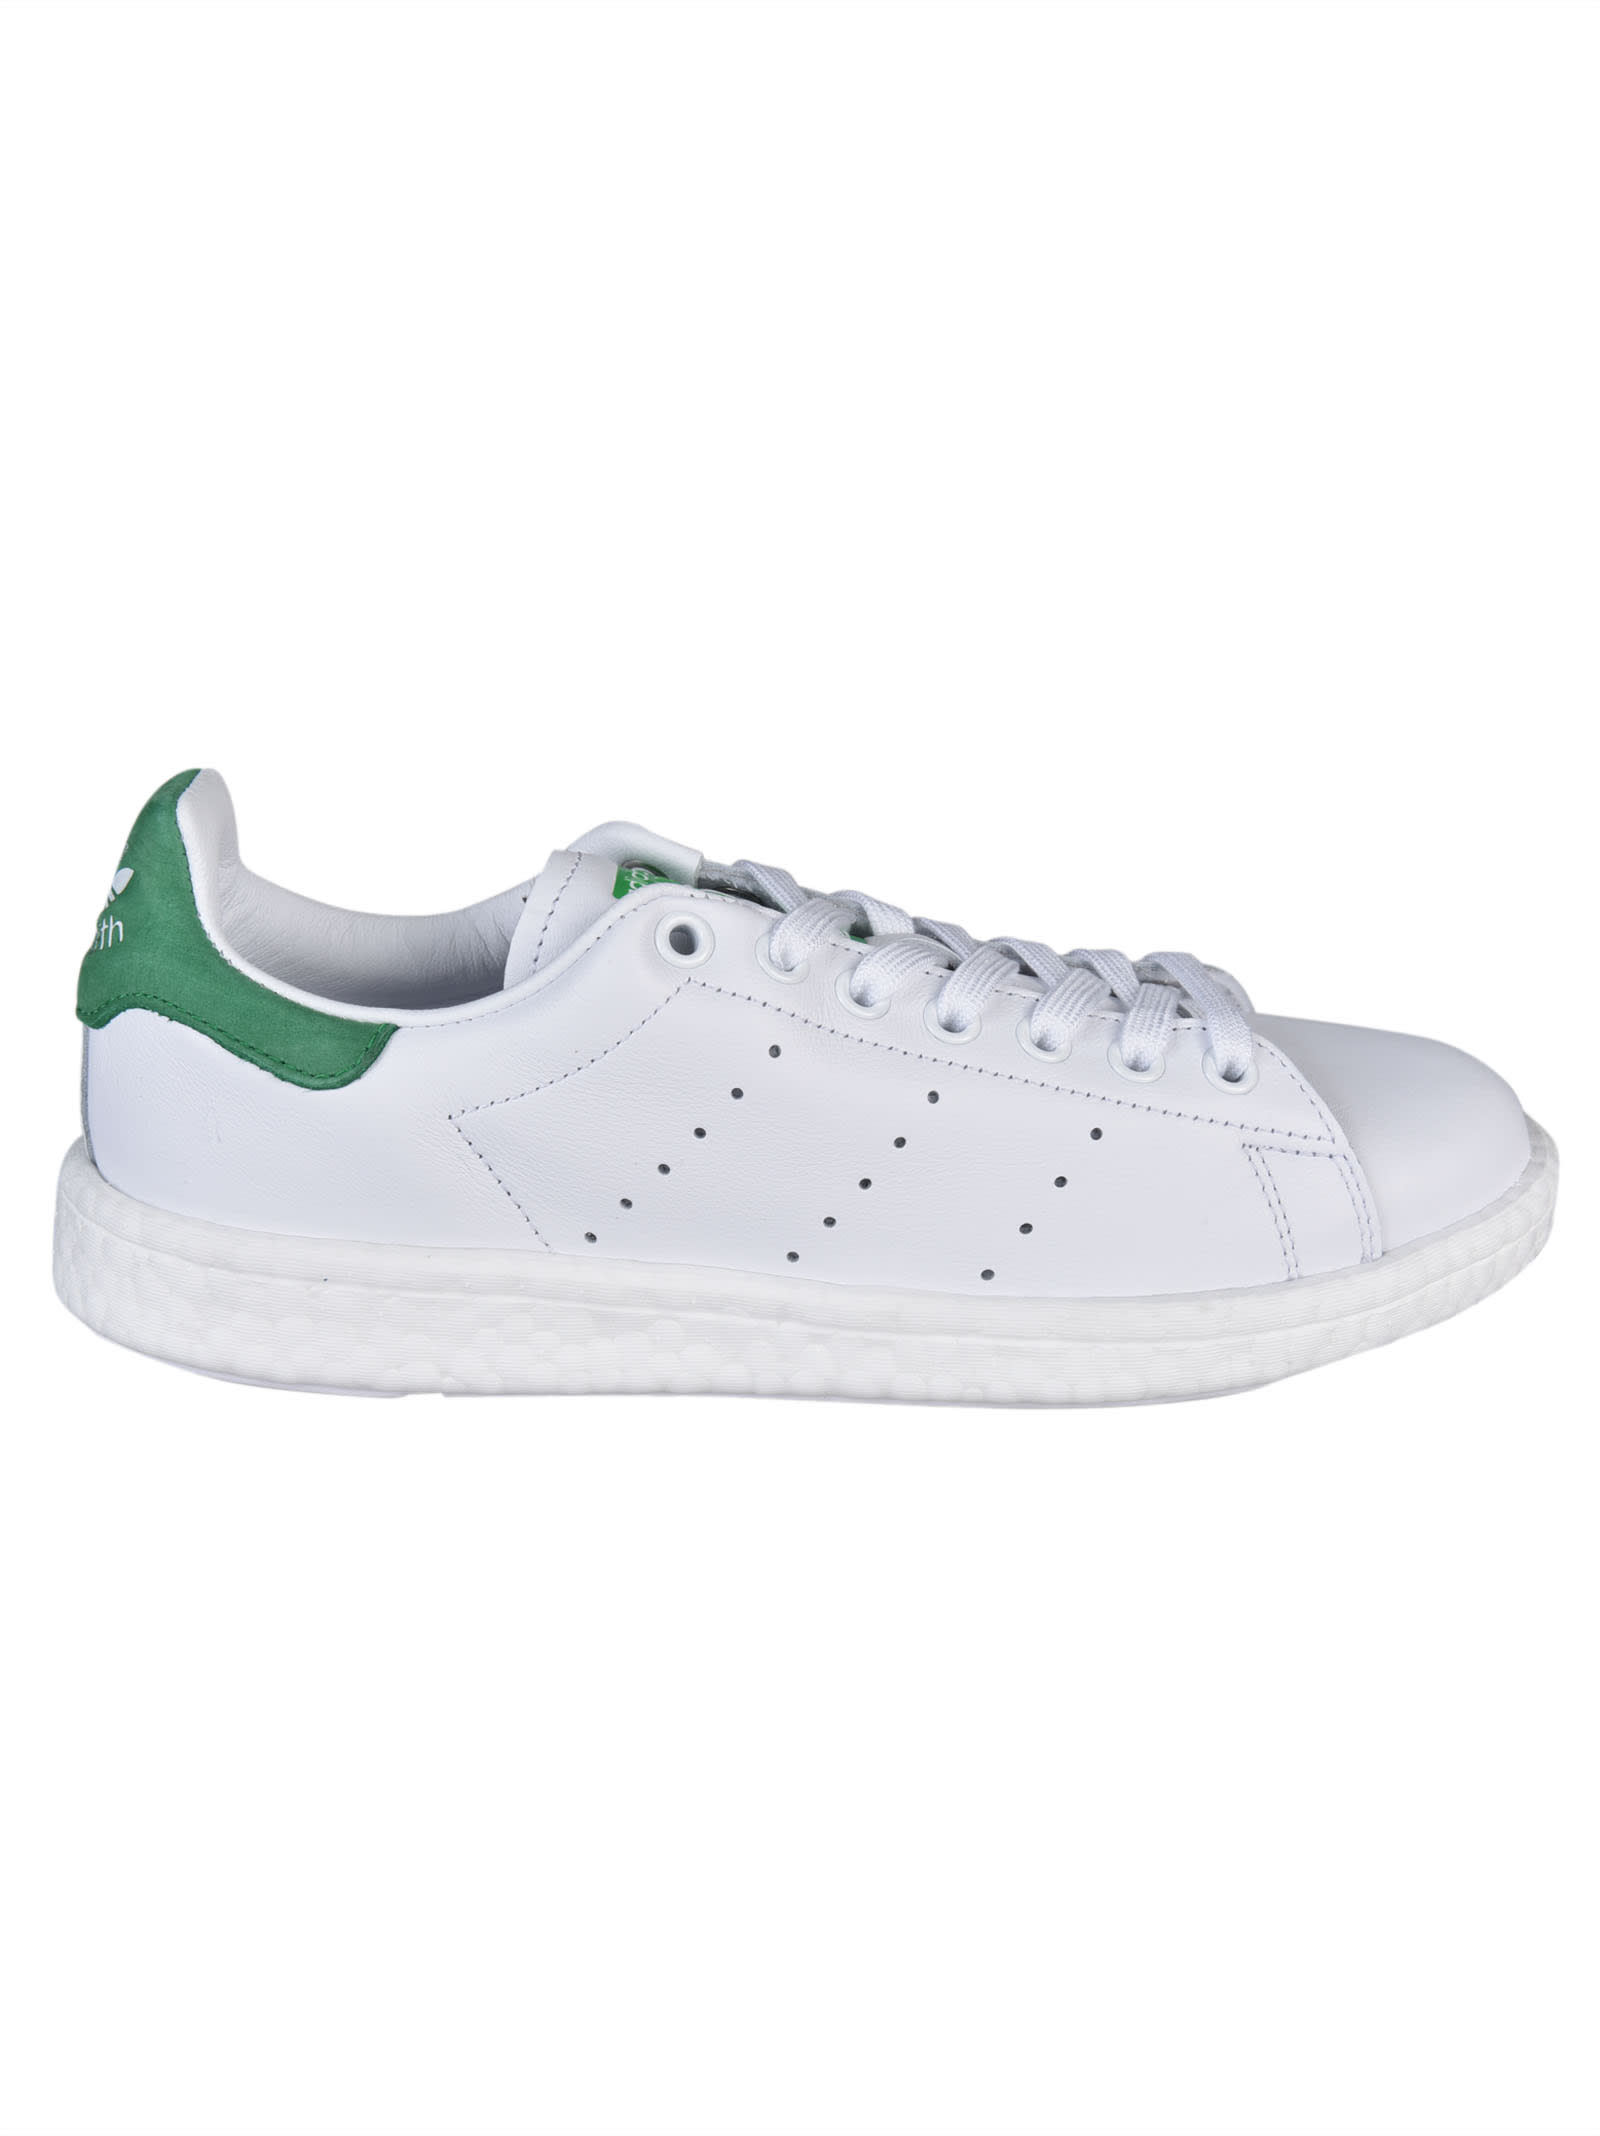 competitive price 1a6f7 97aa2 Adidas Stan Smith Sneakers